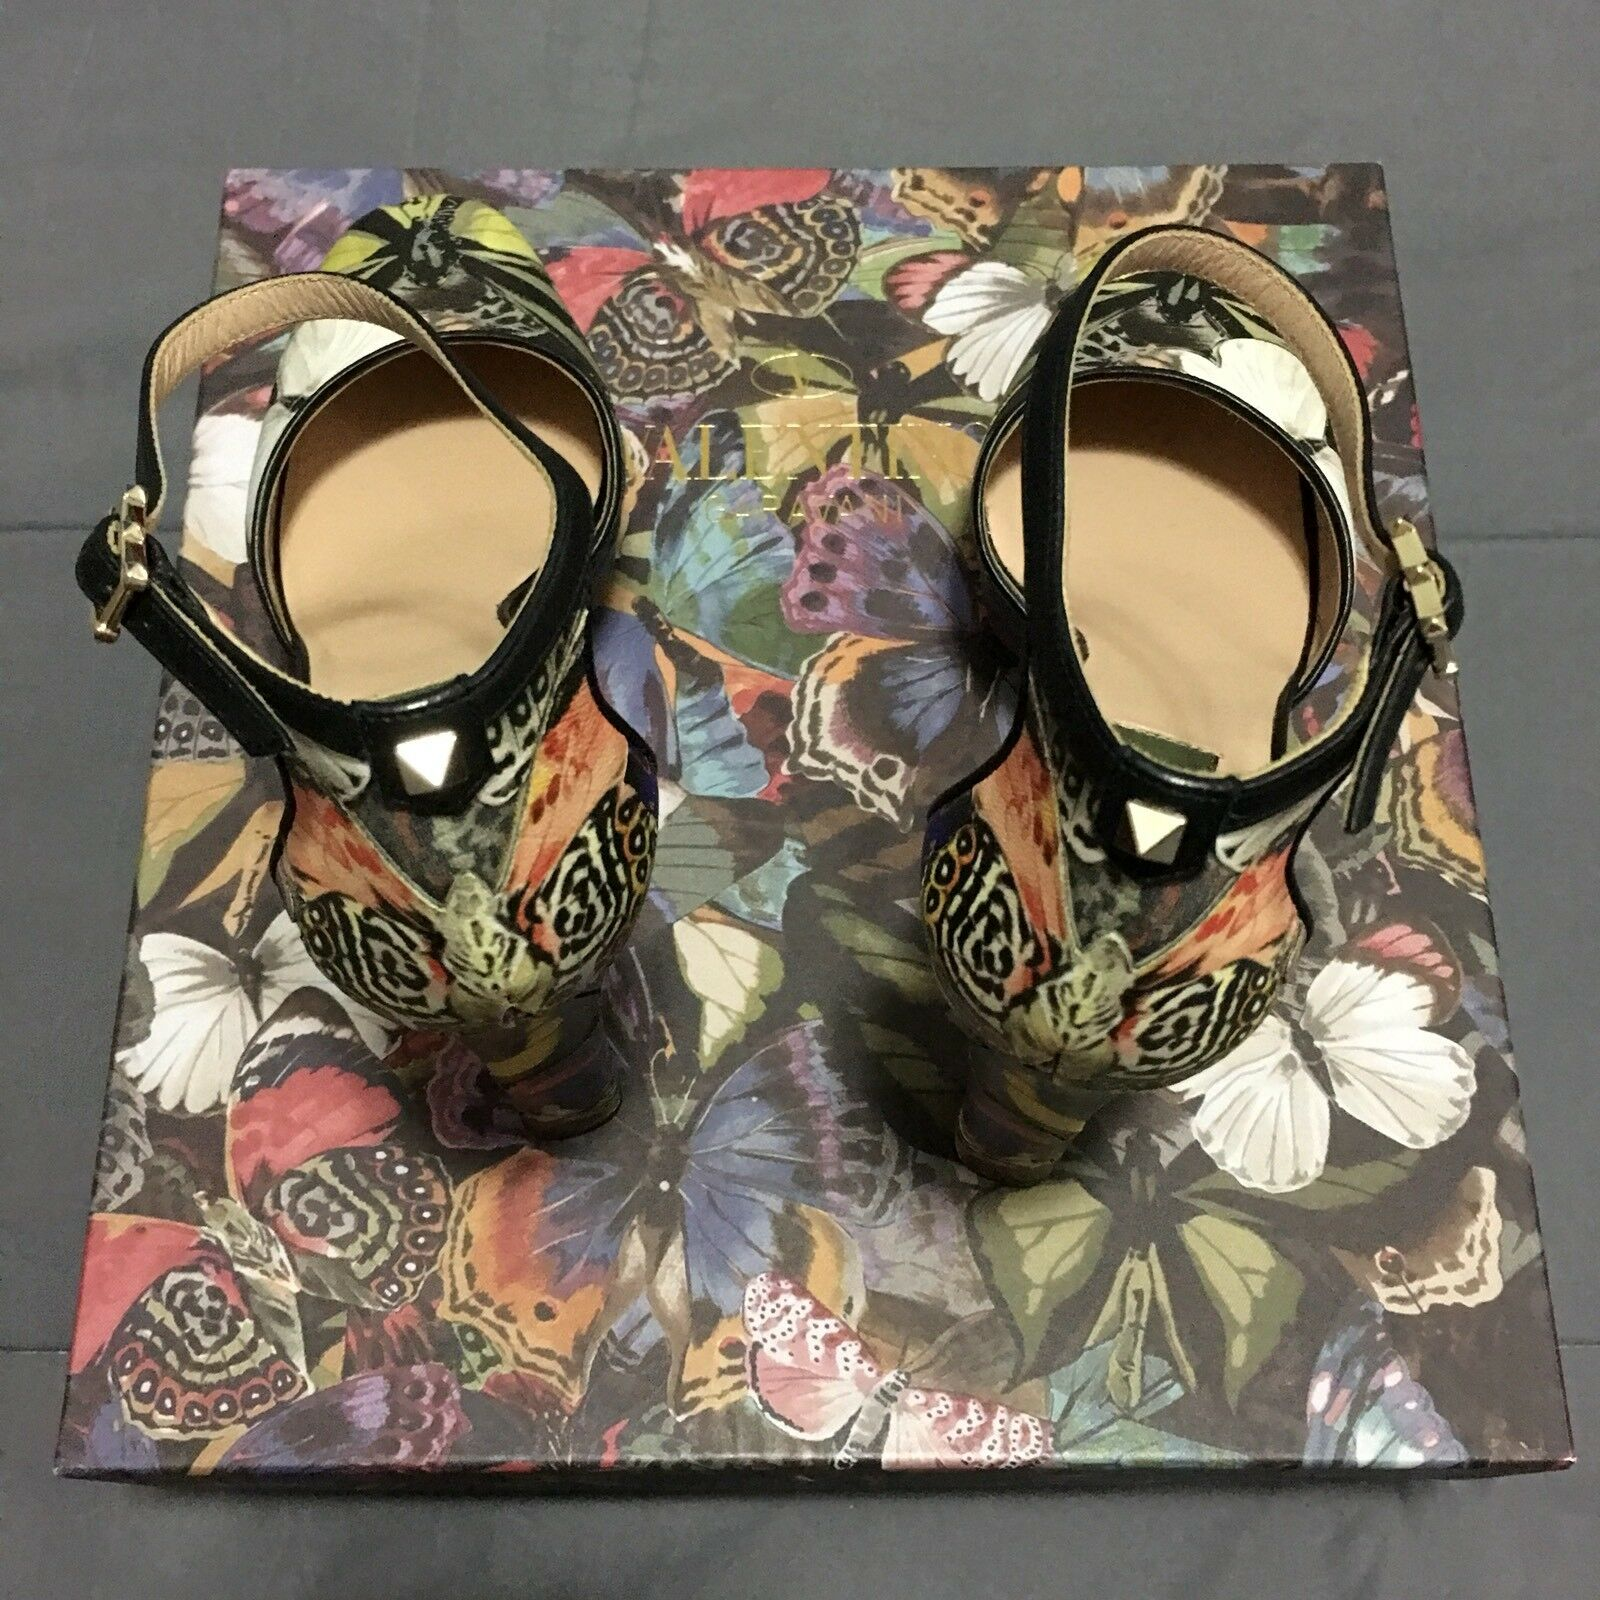 Valentino Garavani Camubutterfly Camo Multi Color Stud Italy Heels schuhes Italy Stud Size 39 67b2c0